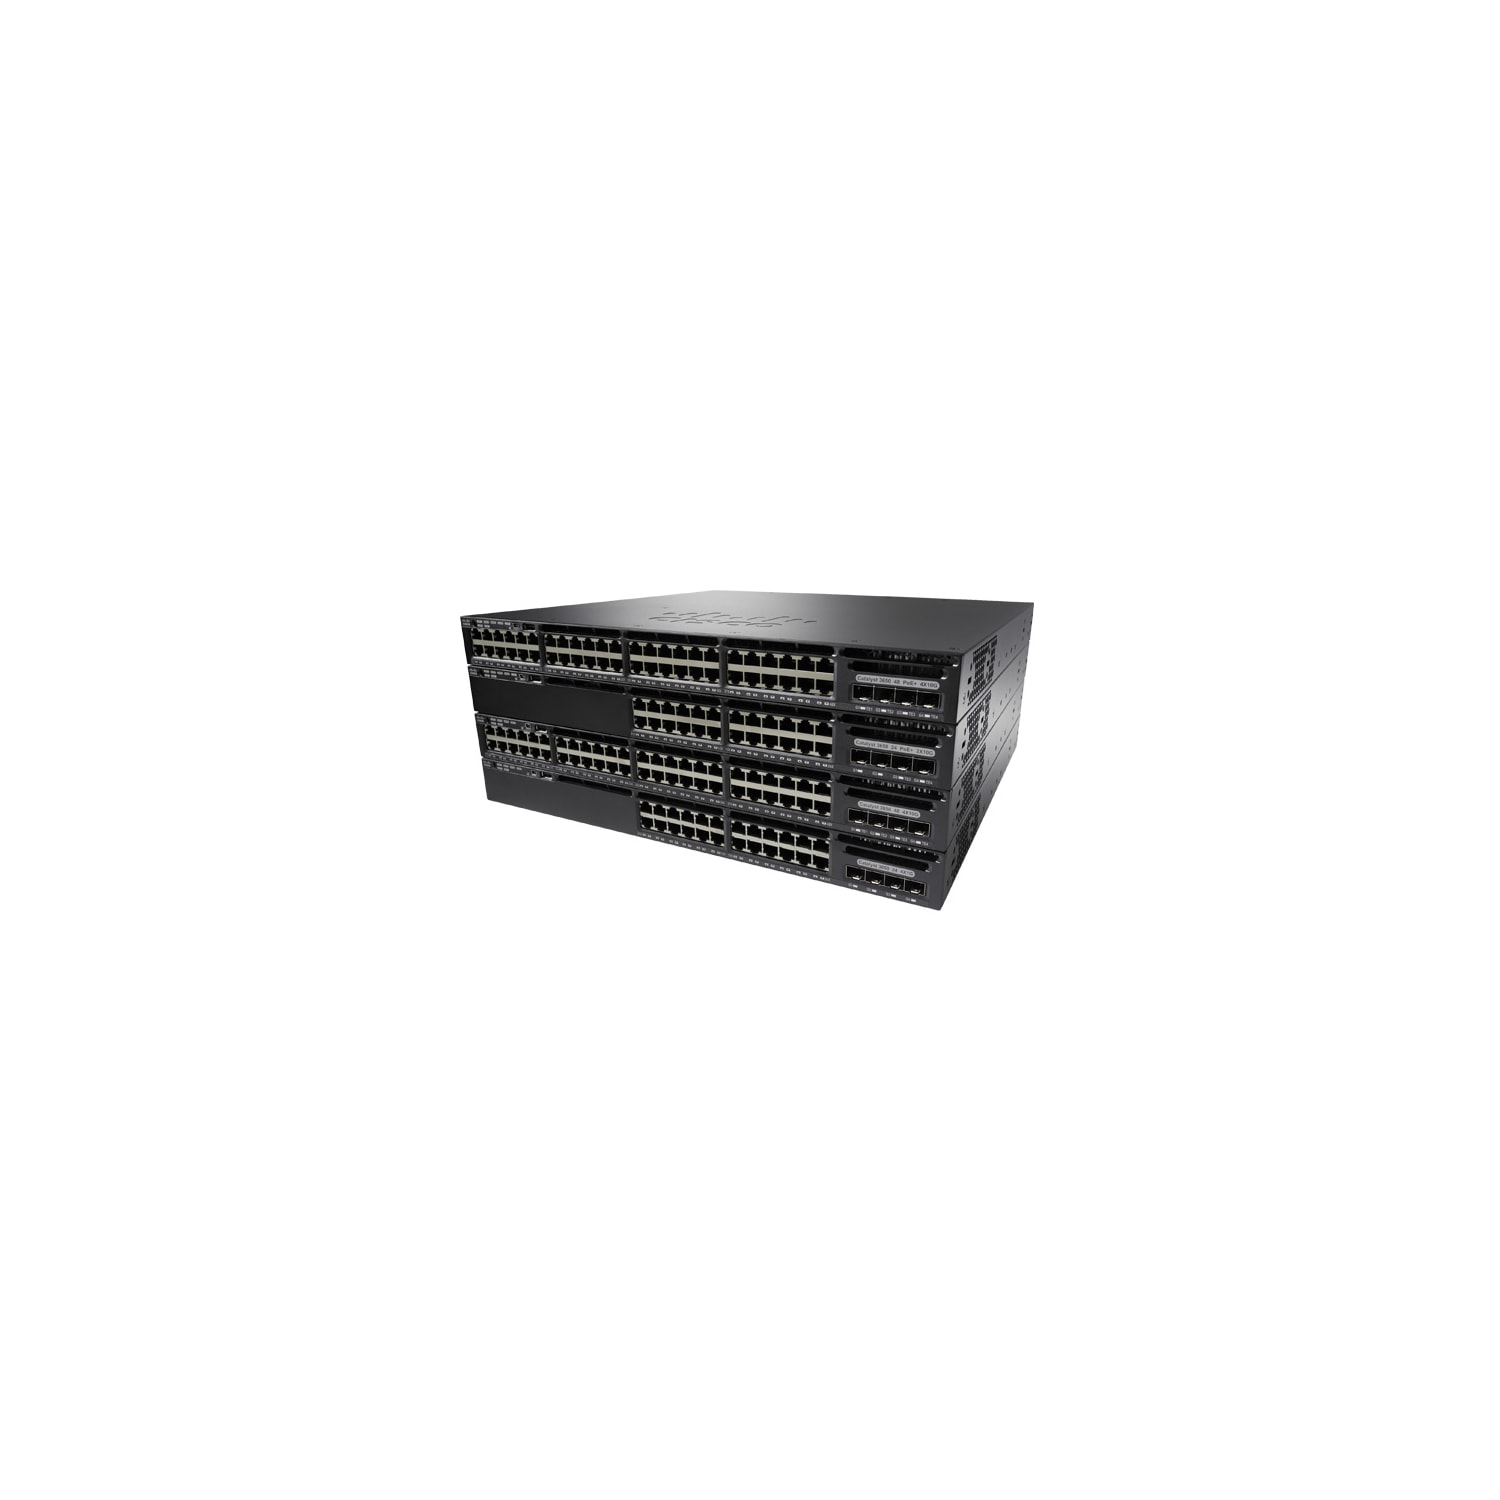 Cisco Catalyst 3650-48P 48 Ports Manageable Layer 3 Switch